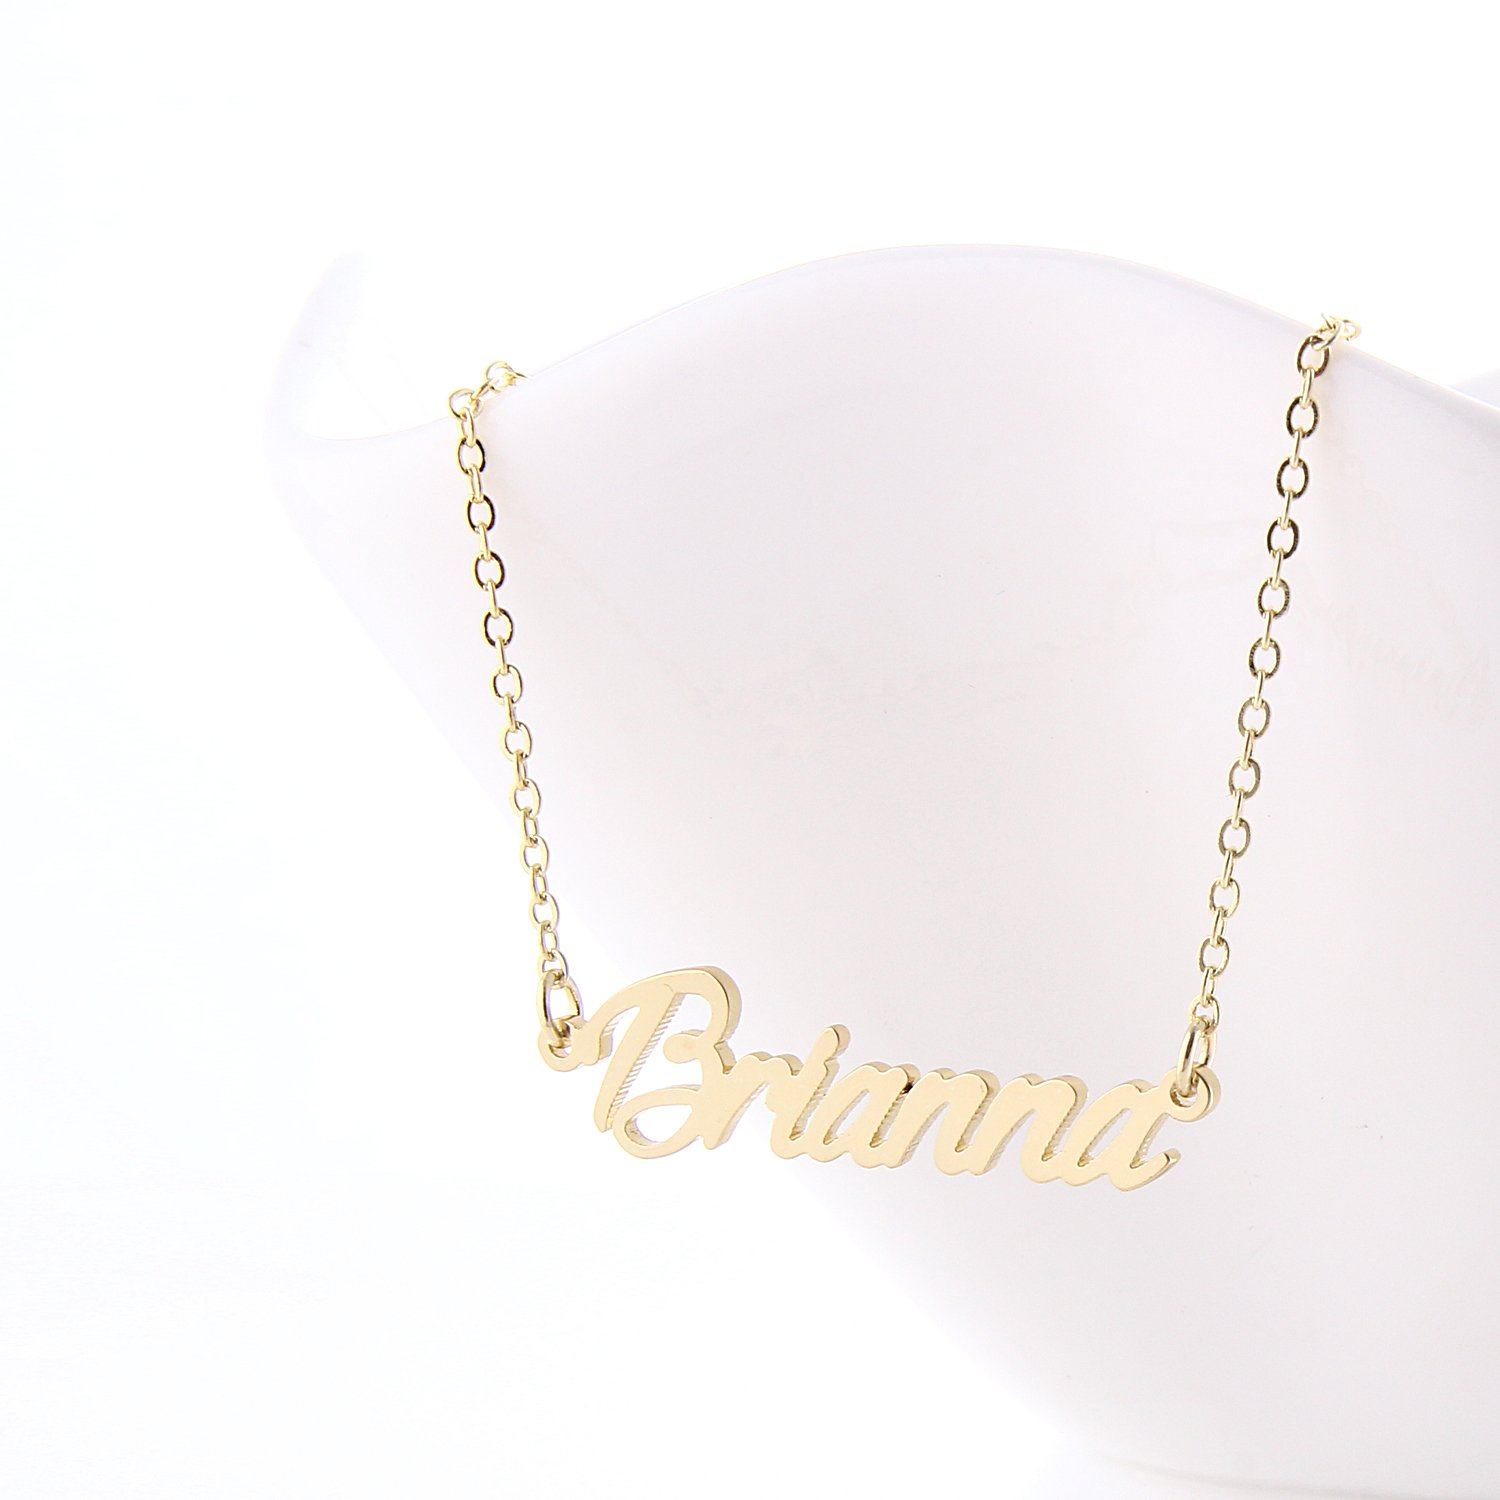 plate zoom larger name drag v image gold to in roll necklace with sterling p cursive over silver